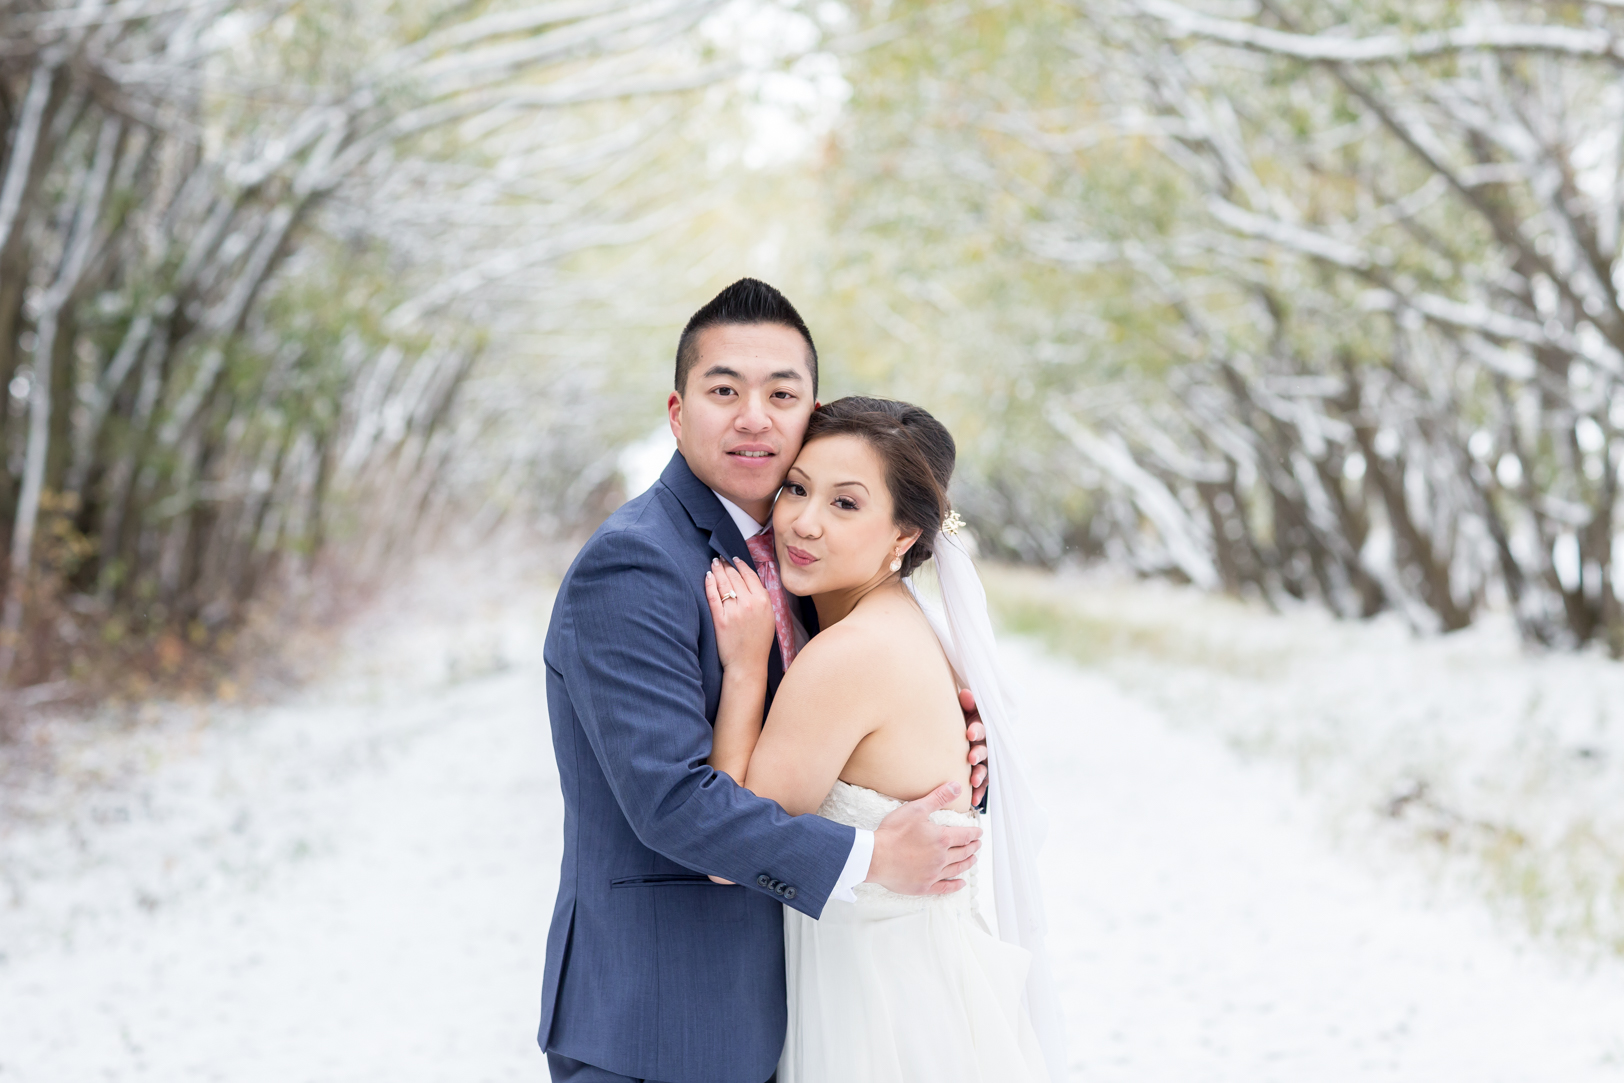 winter wedding photos edmonton